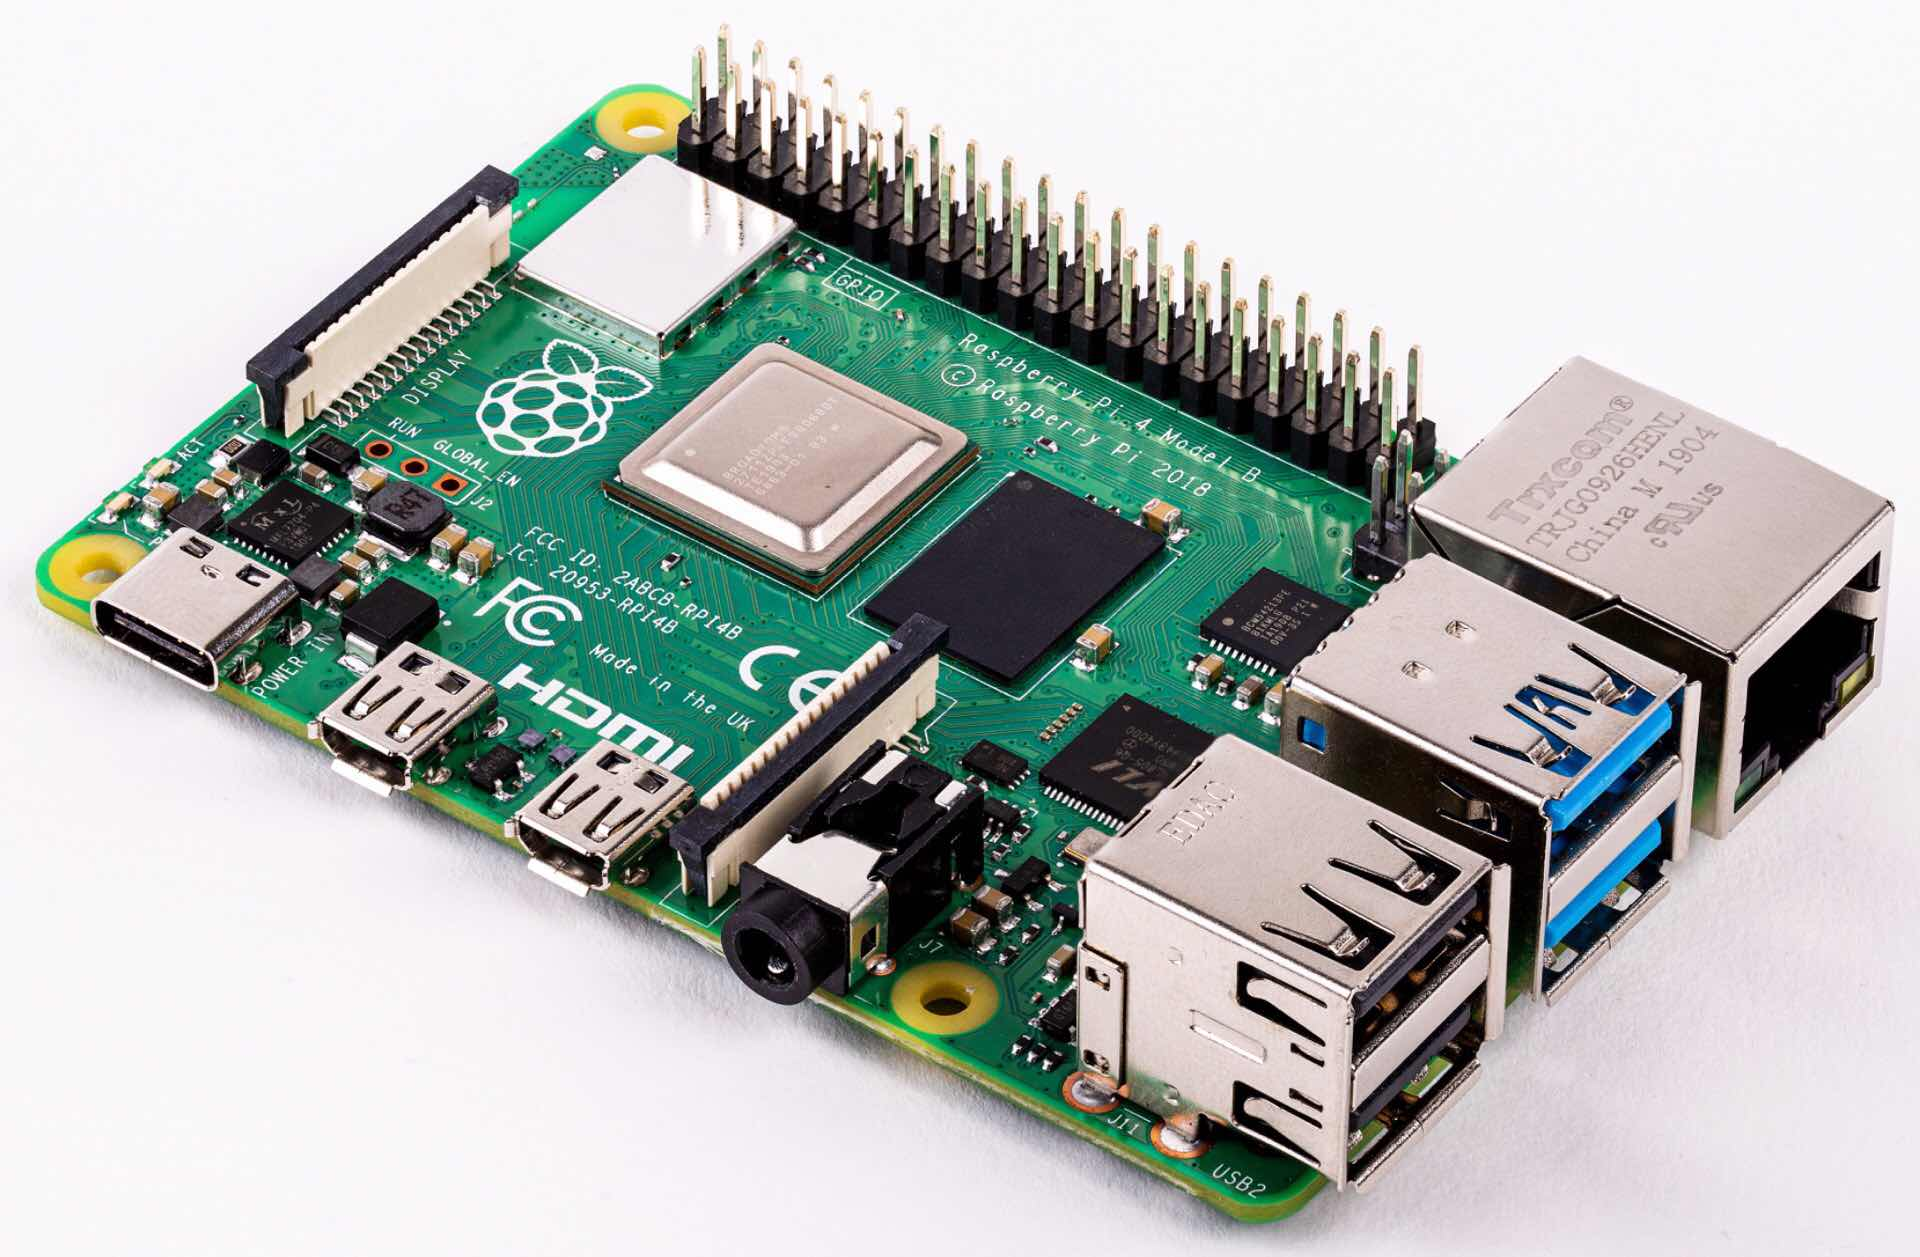 The Raspberry Pi 4 mini-computer. ($53 for 1GB RAM, $63 for 2GB RAM, and $73 for 4GB RAM)